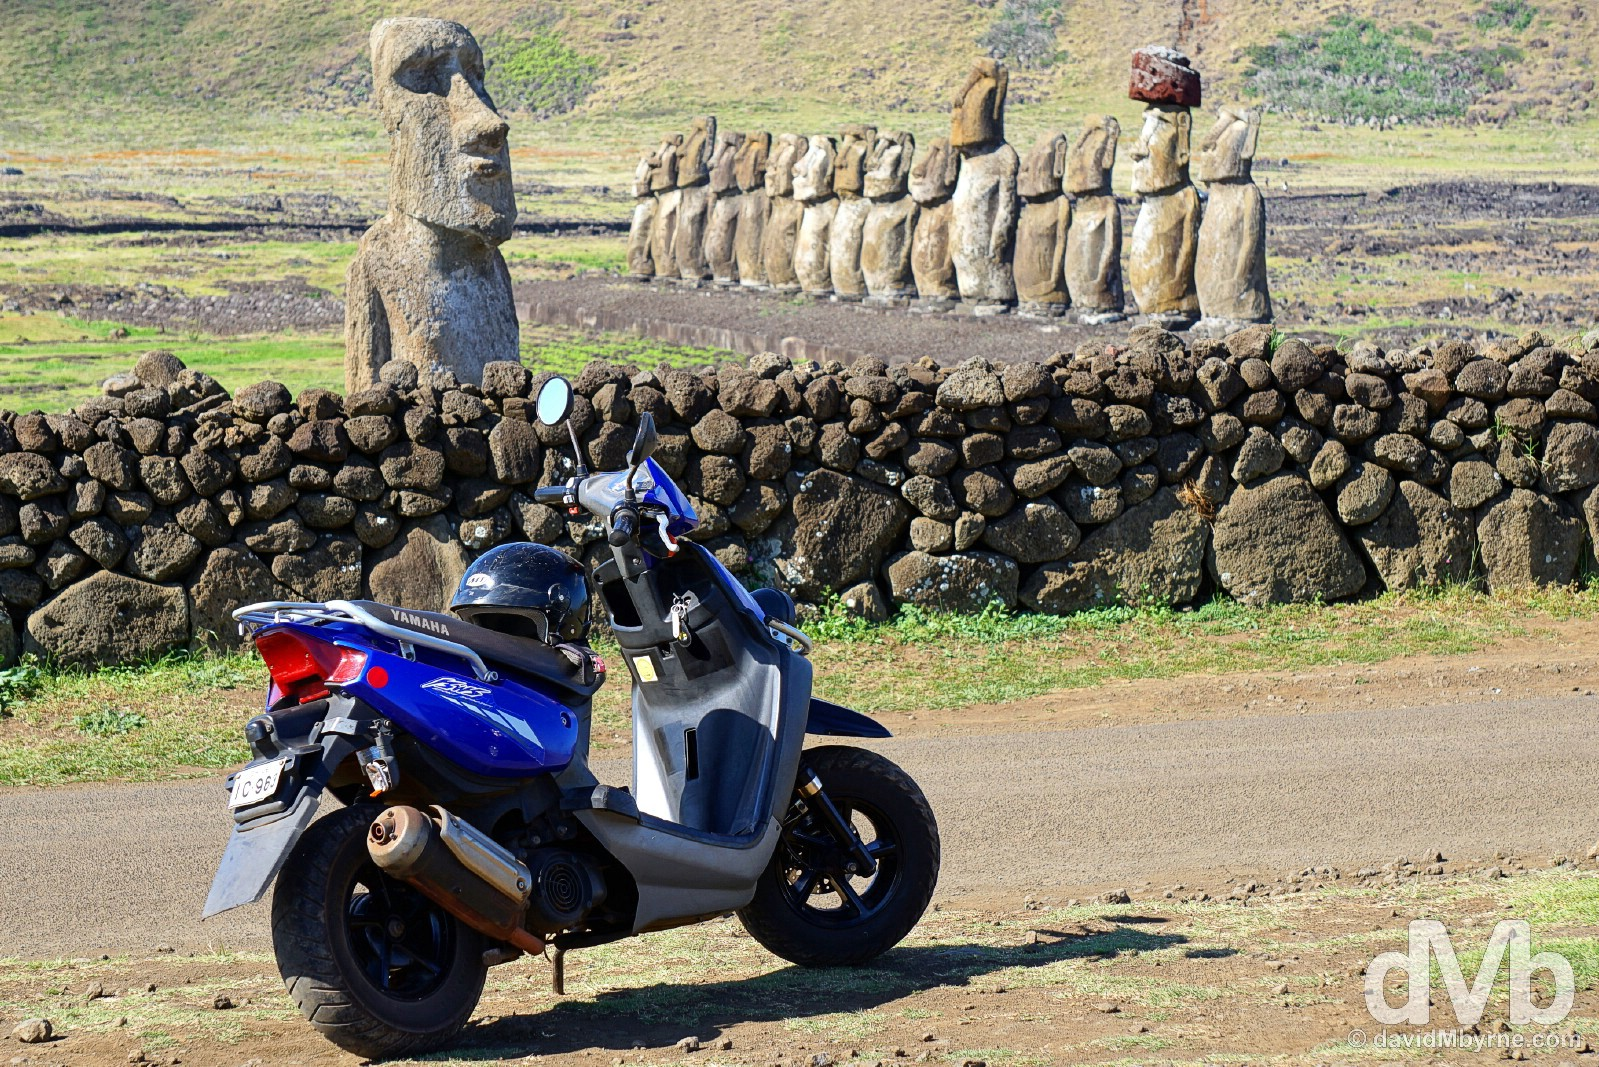 Yamaha at Ahu Tongariki, Easter Island, Chile. October 1, 2015.